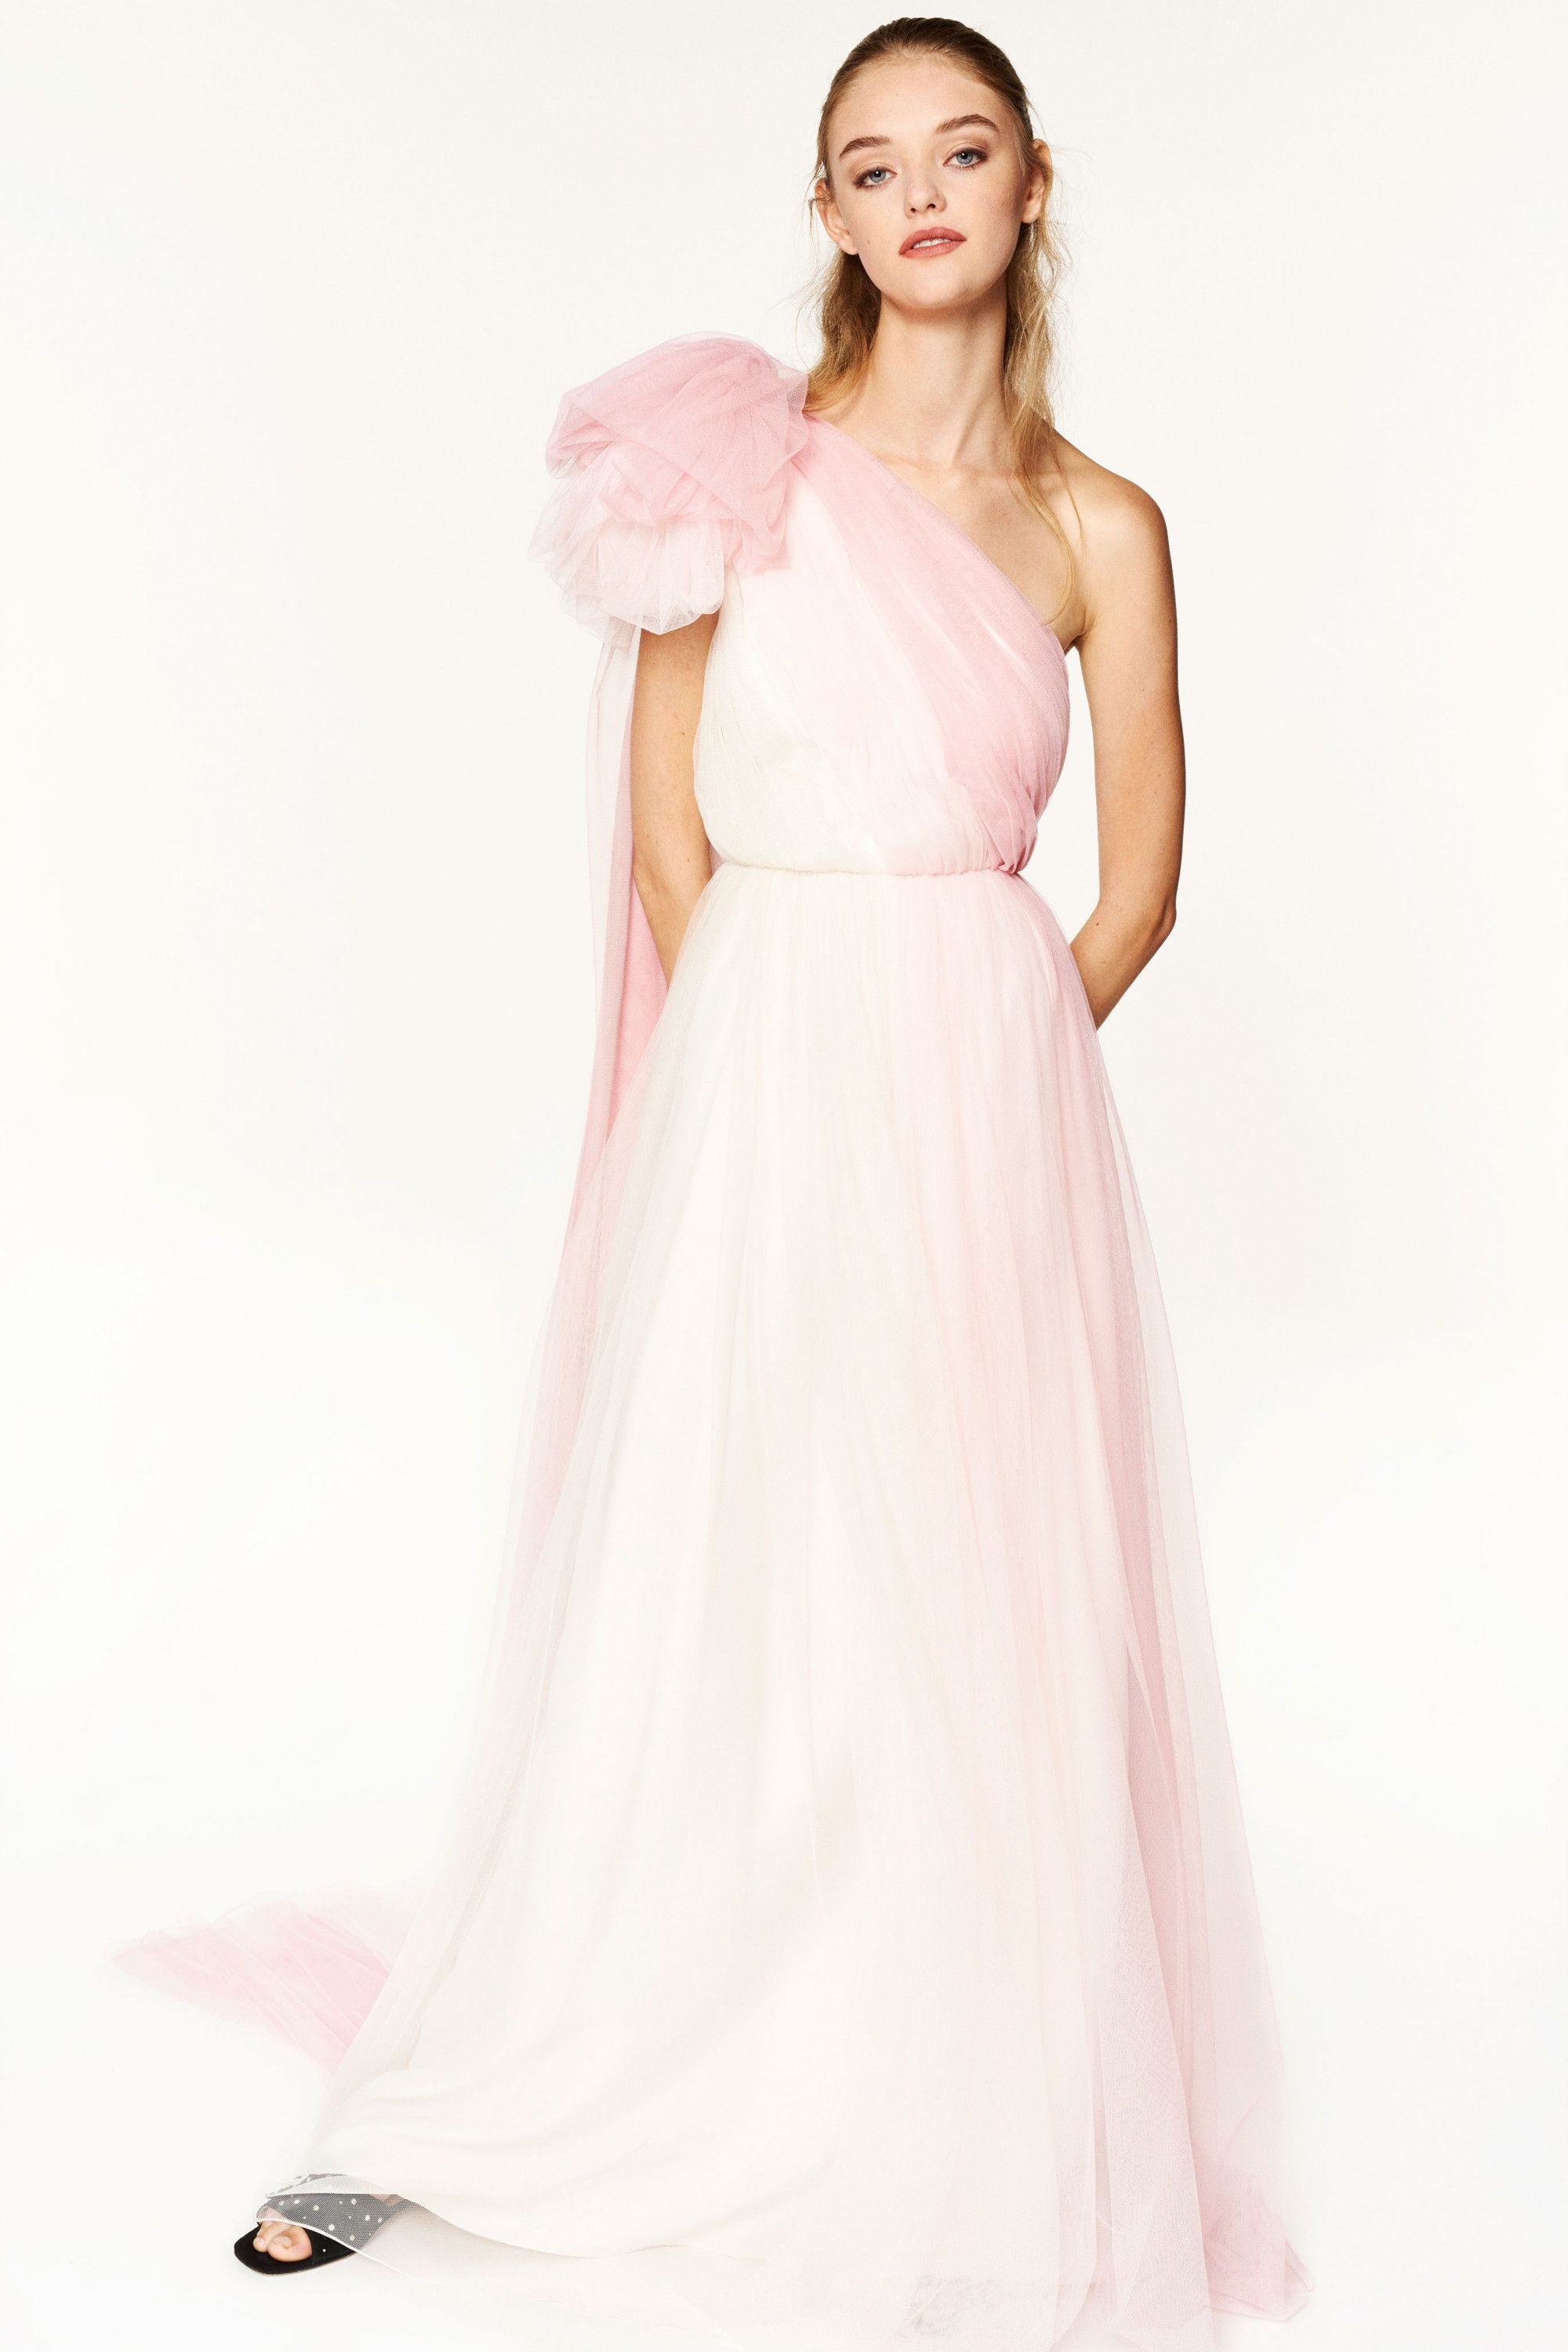 Zac posen wedding dress  ZAC Zac Posen  Evening dresses  Pinterest  Zac posen Spring and